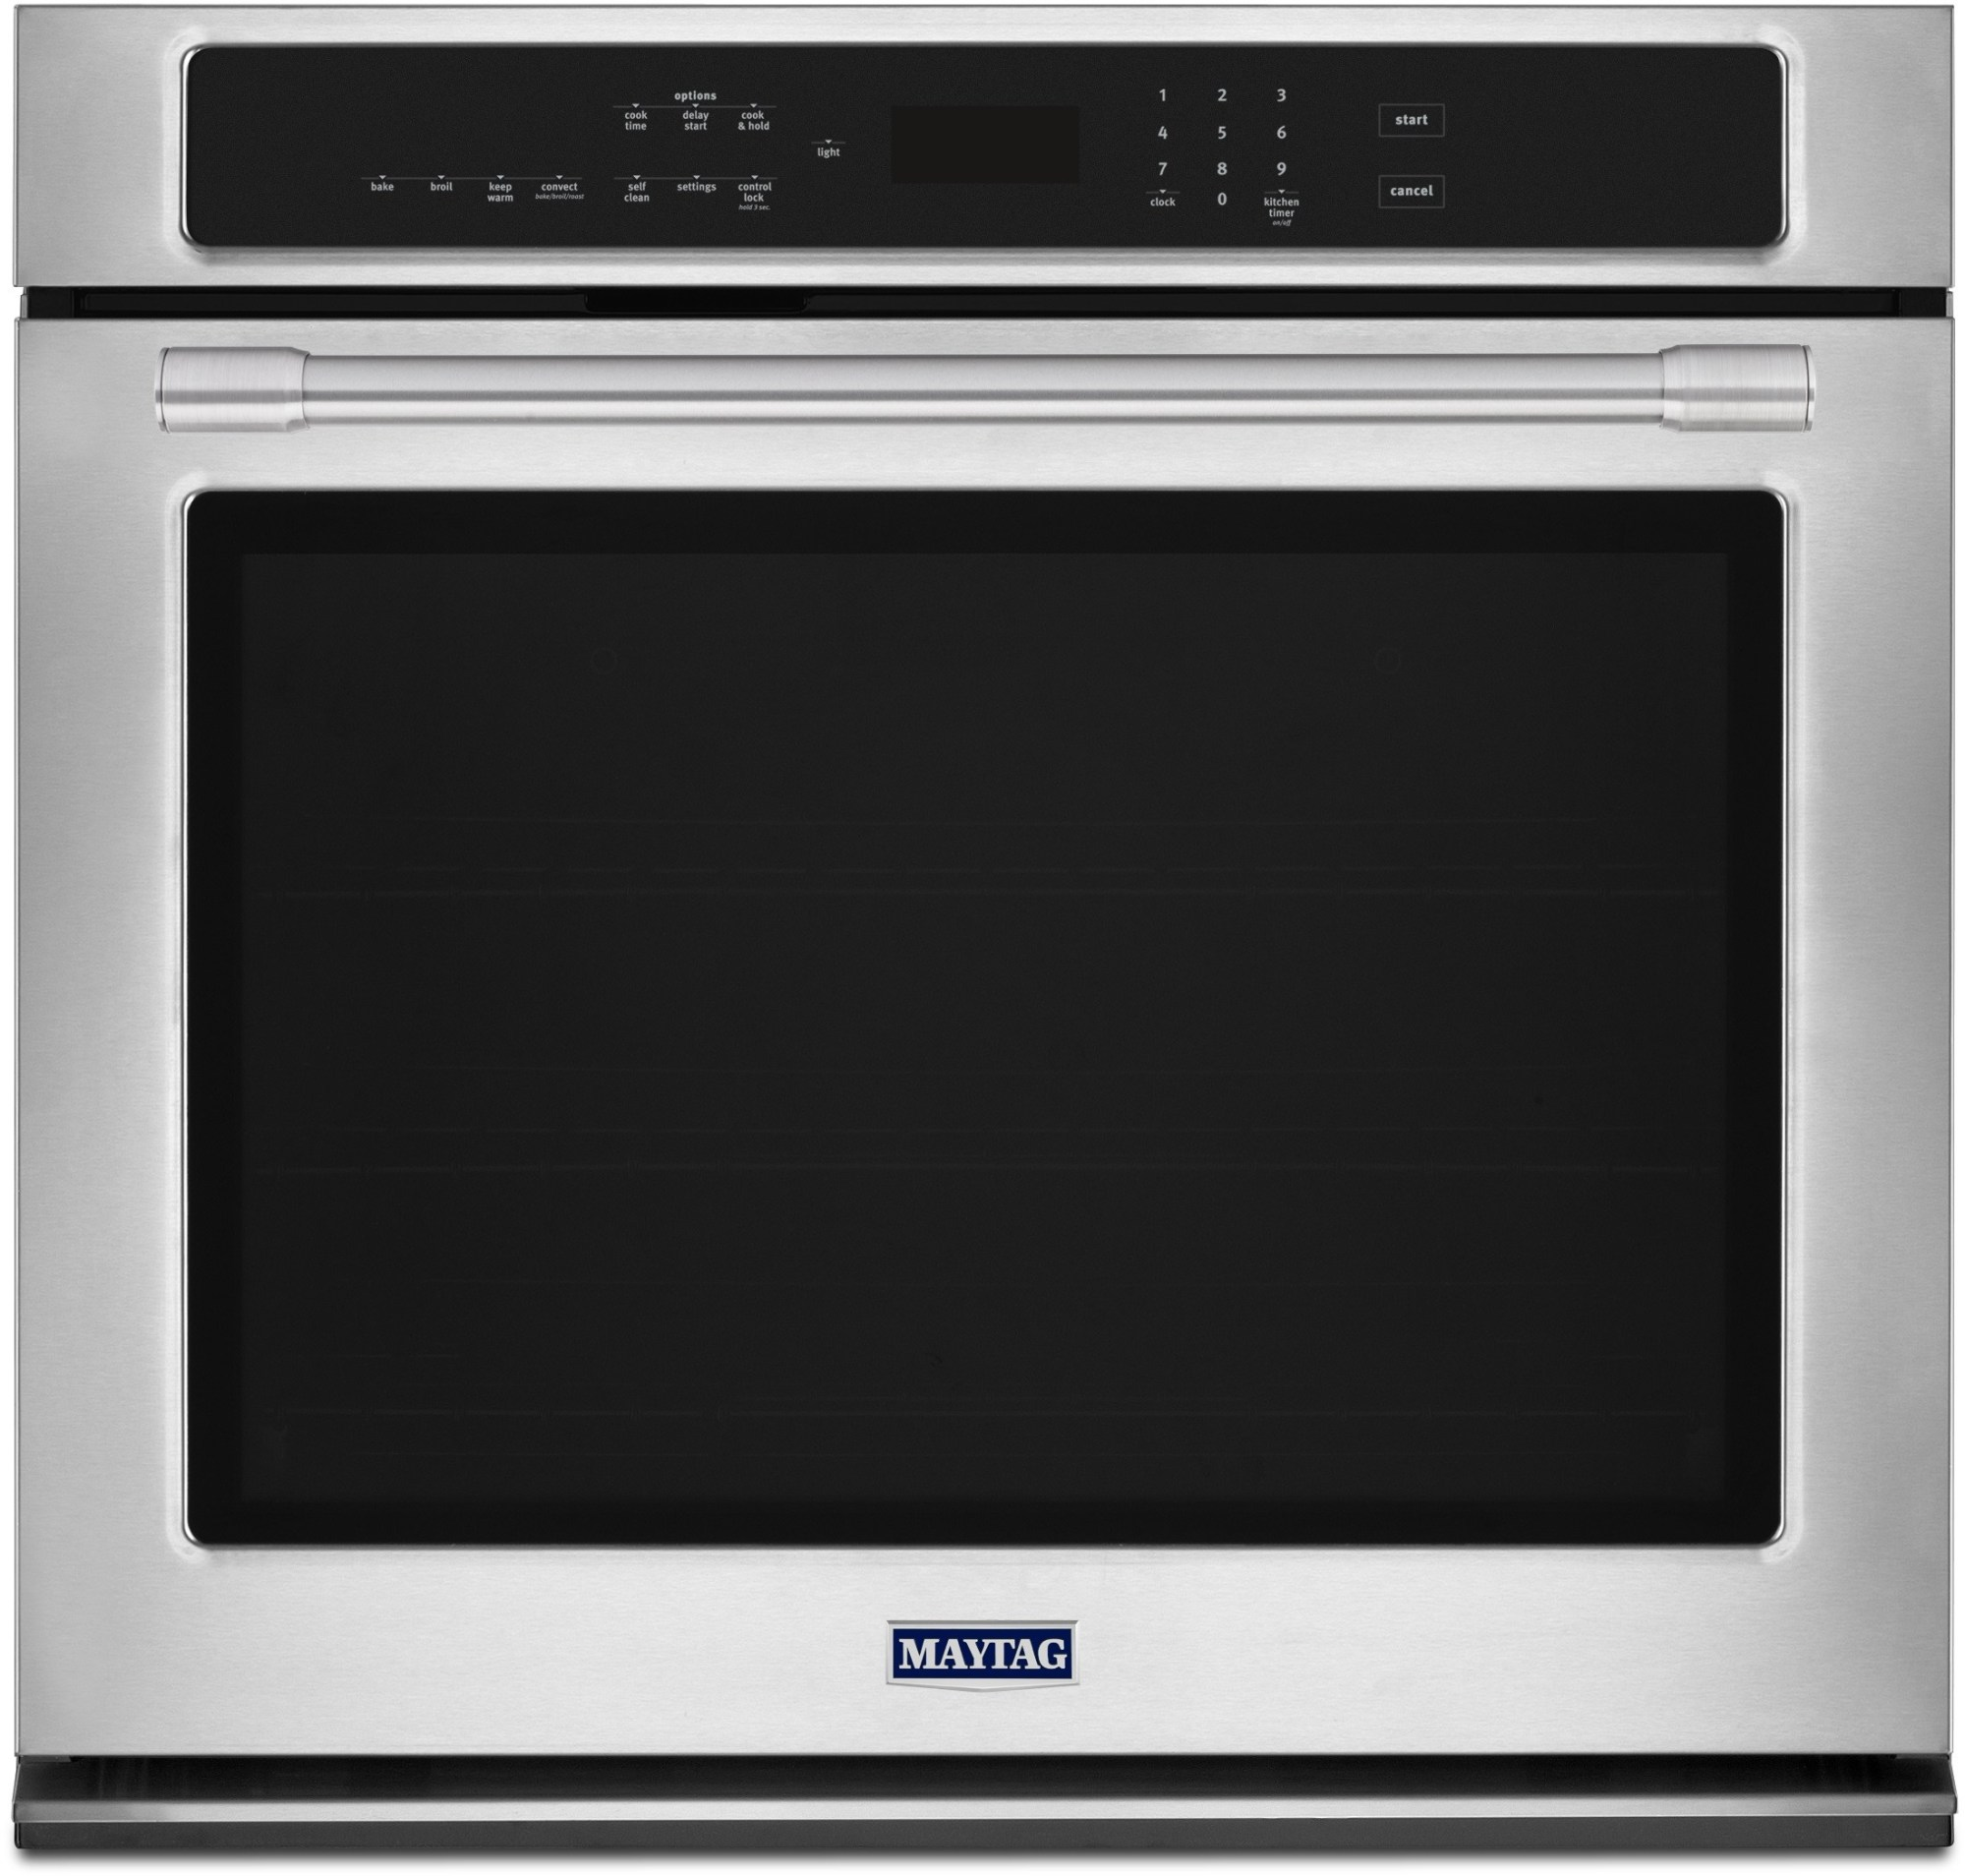 hight resolution of maytag mew9527fz 27 inch electric wall oven with 5 0 cu ft capacity fingerprint resistant stainless steel true convection with fan and 3rd element